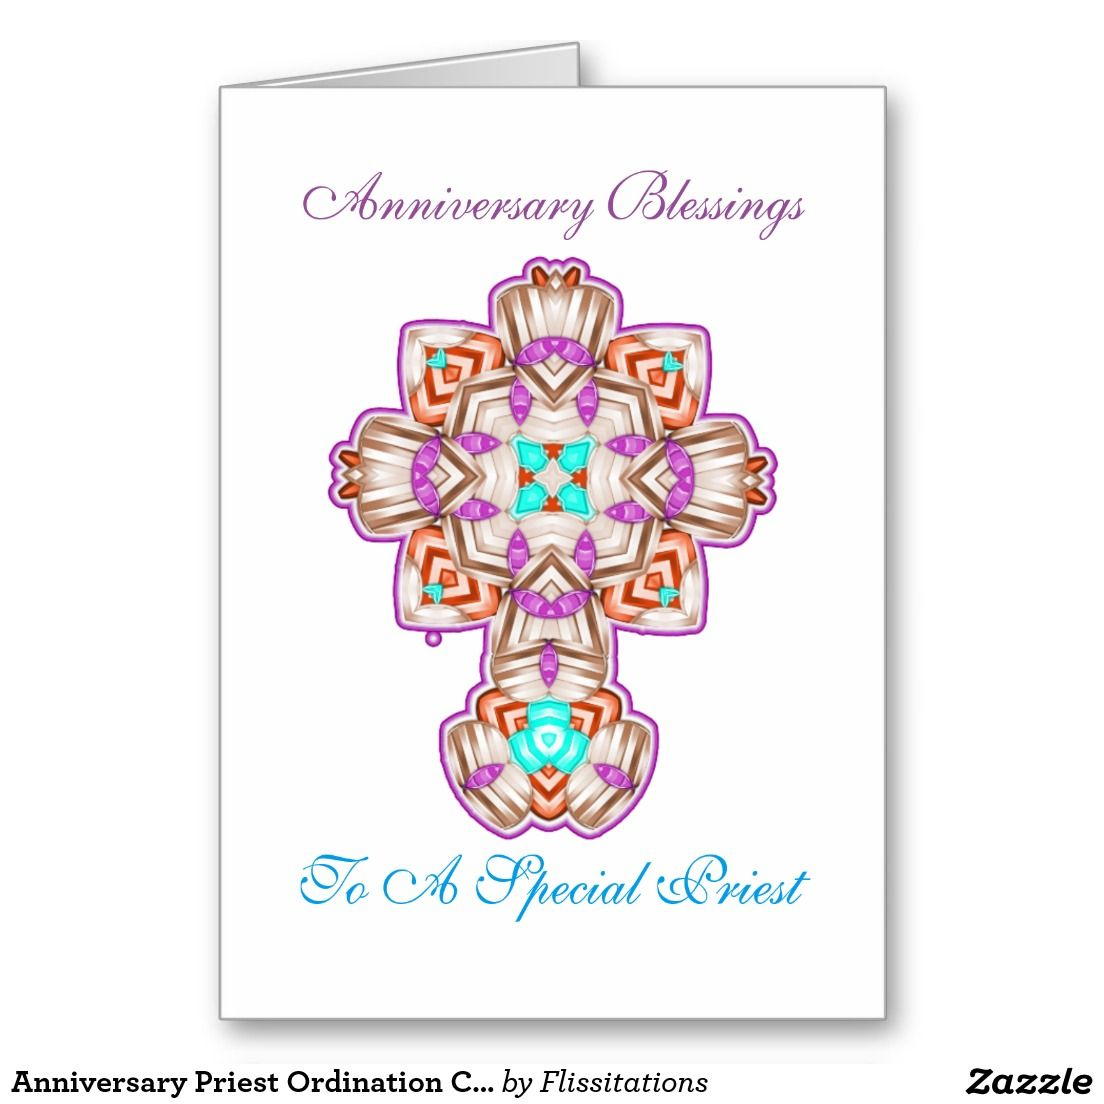 Anniversary Priest Ordination Celebrations Card Cards Pinterest